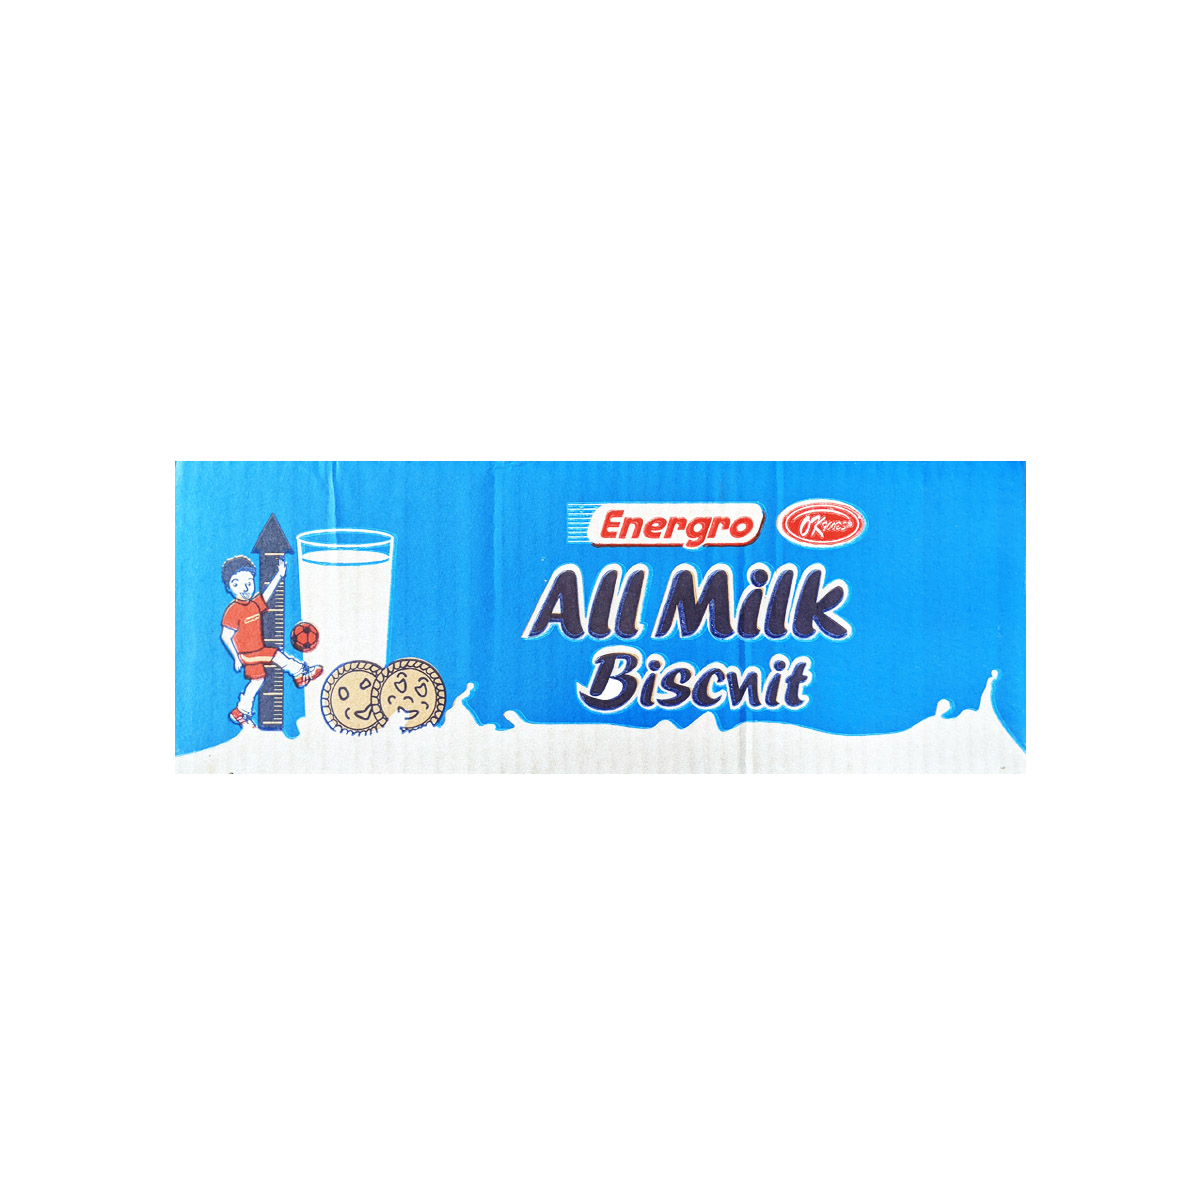 All Milk Biscuits Contains wheat, milk protein and soya to give that great taste of milk and energy for your every day activities. Quantity: 144 packets per carton Weight: 11g x 144